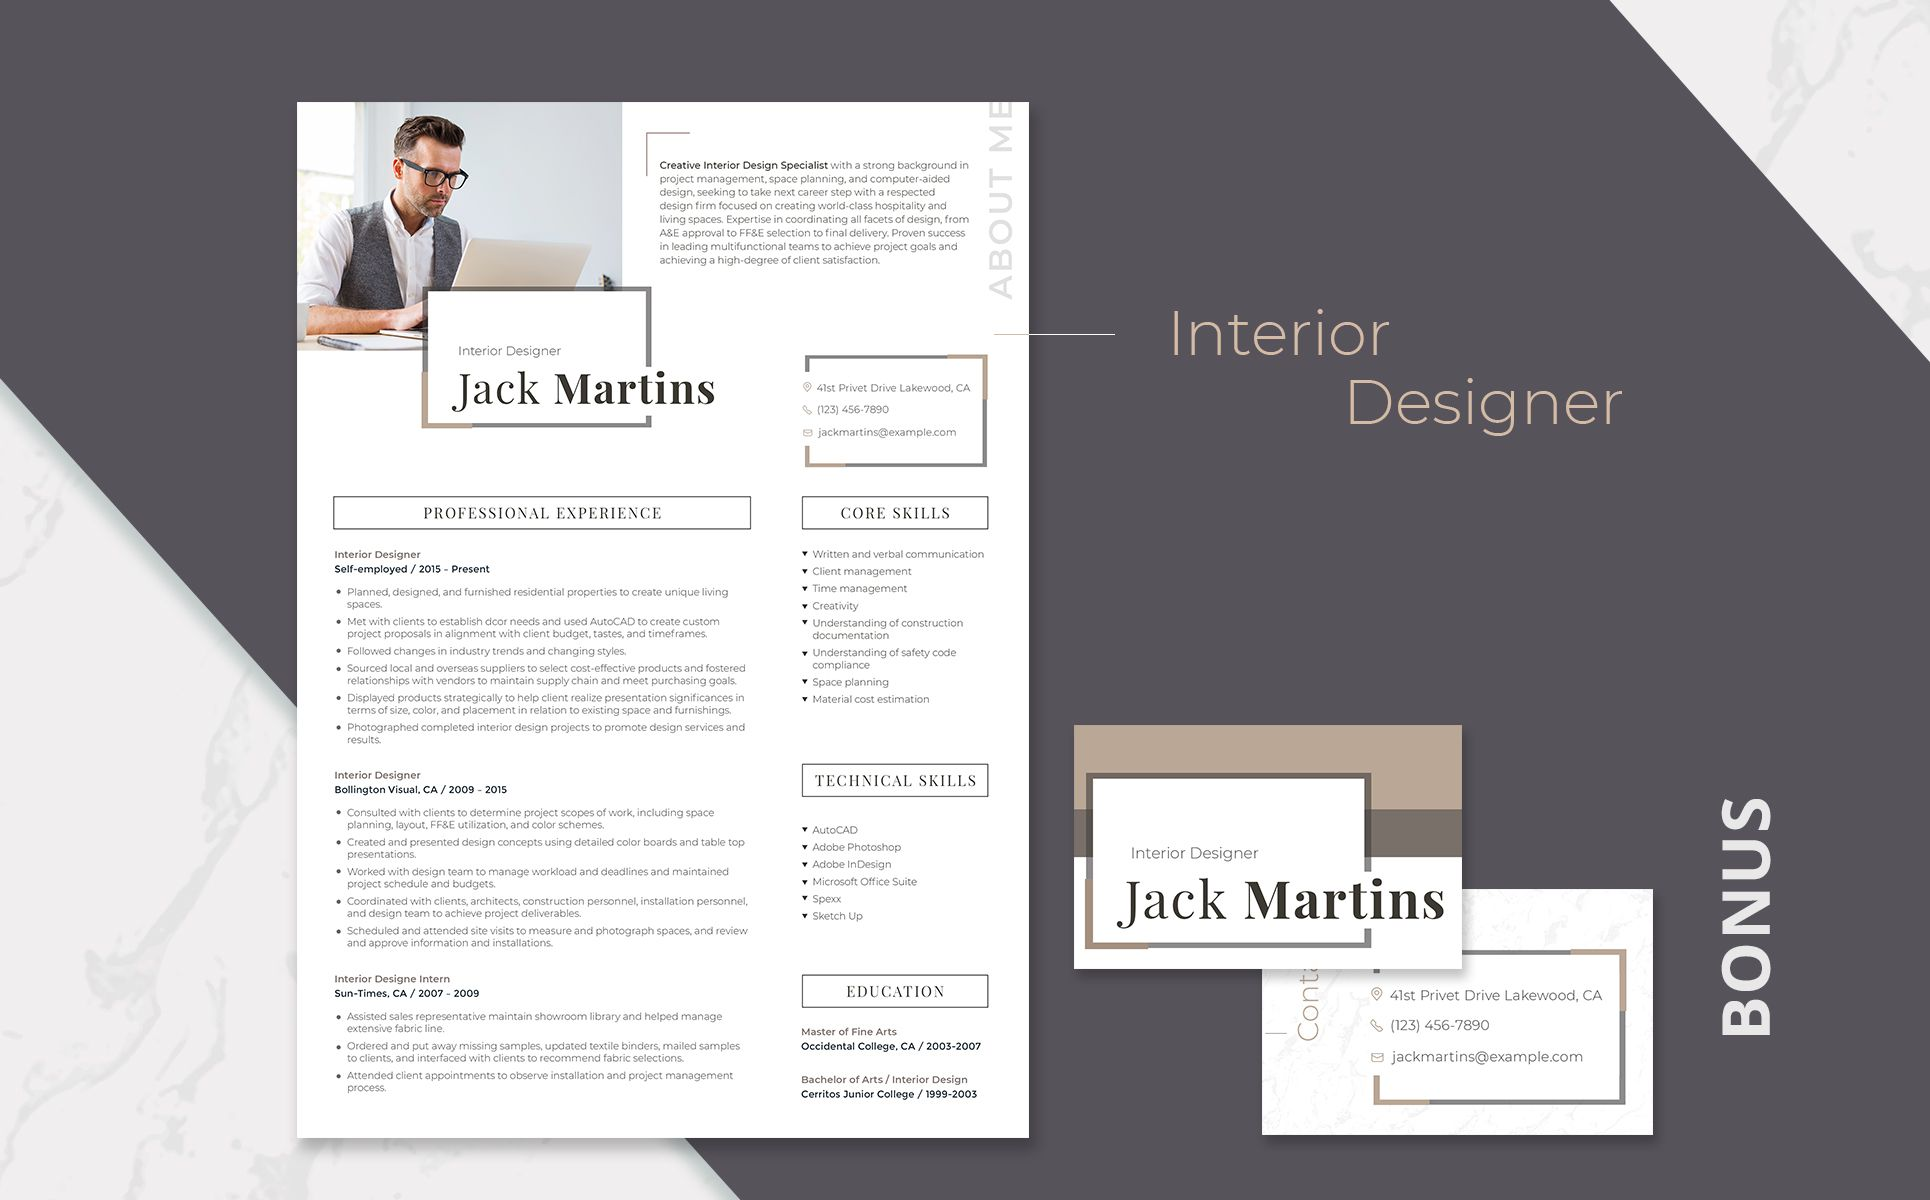 Jack Martins Interior Designer Resume Template 66437 With